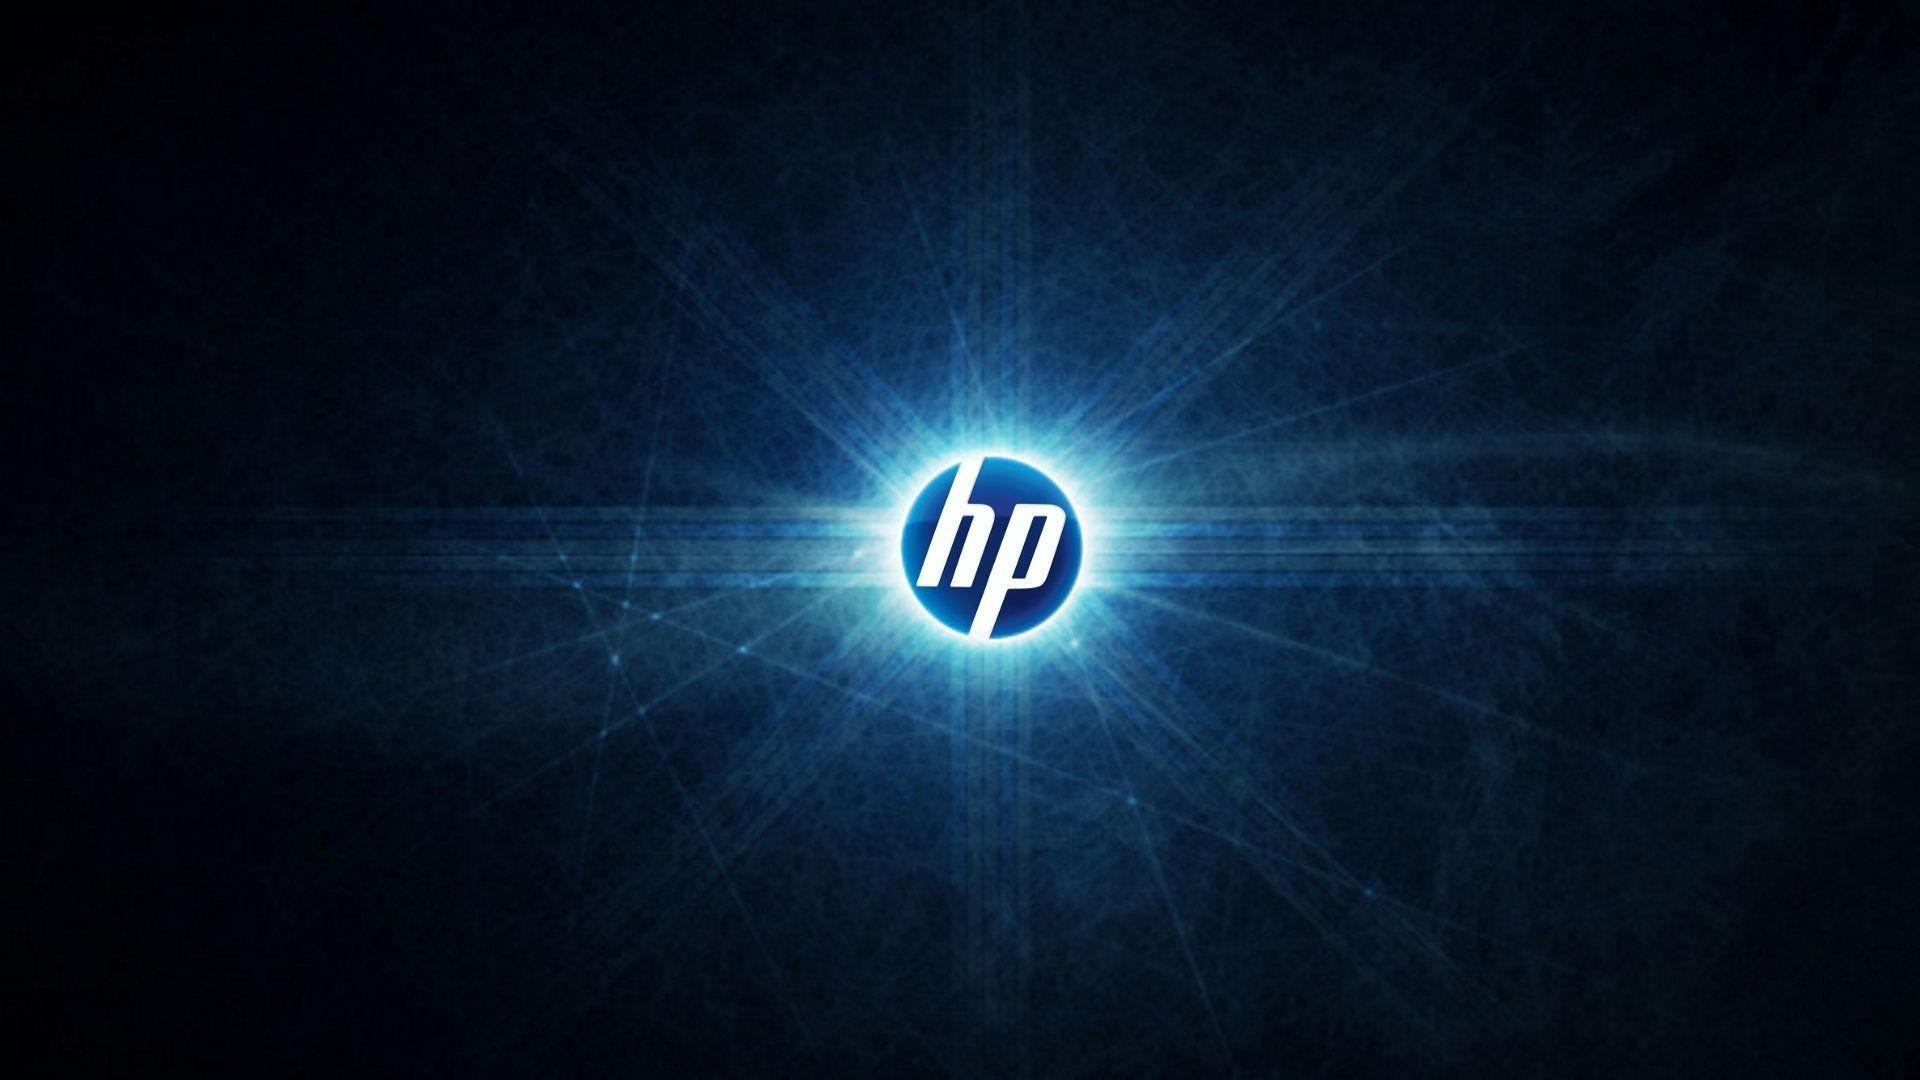 Looking for certain HP Wallpaper Solved - Windows 7 Help Forums